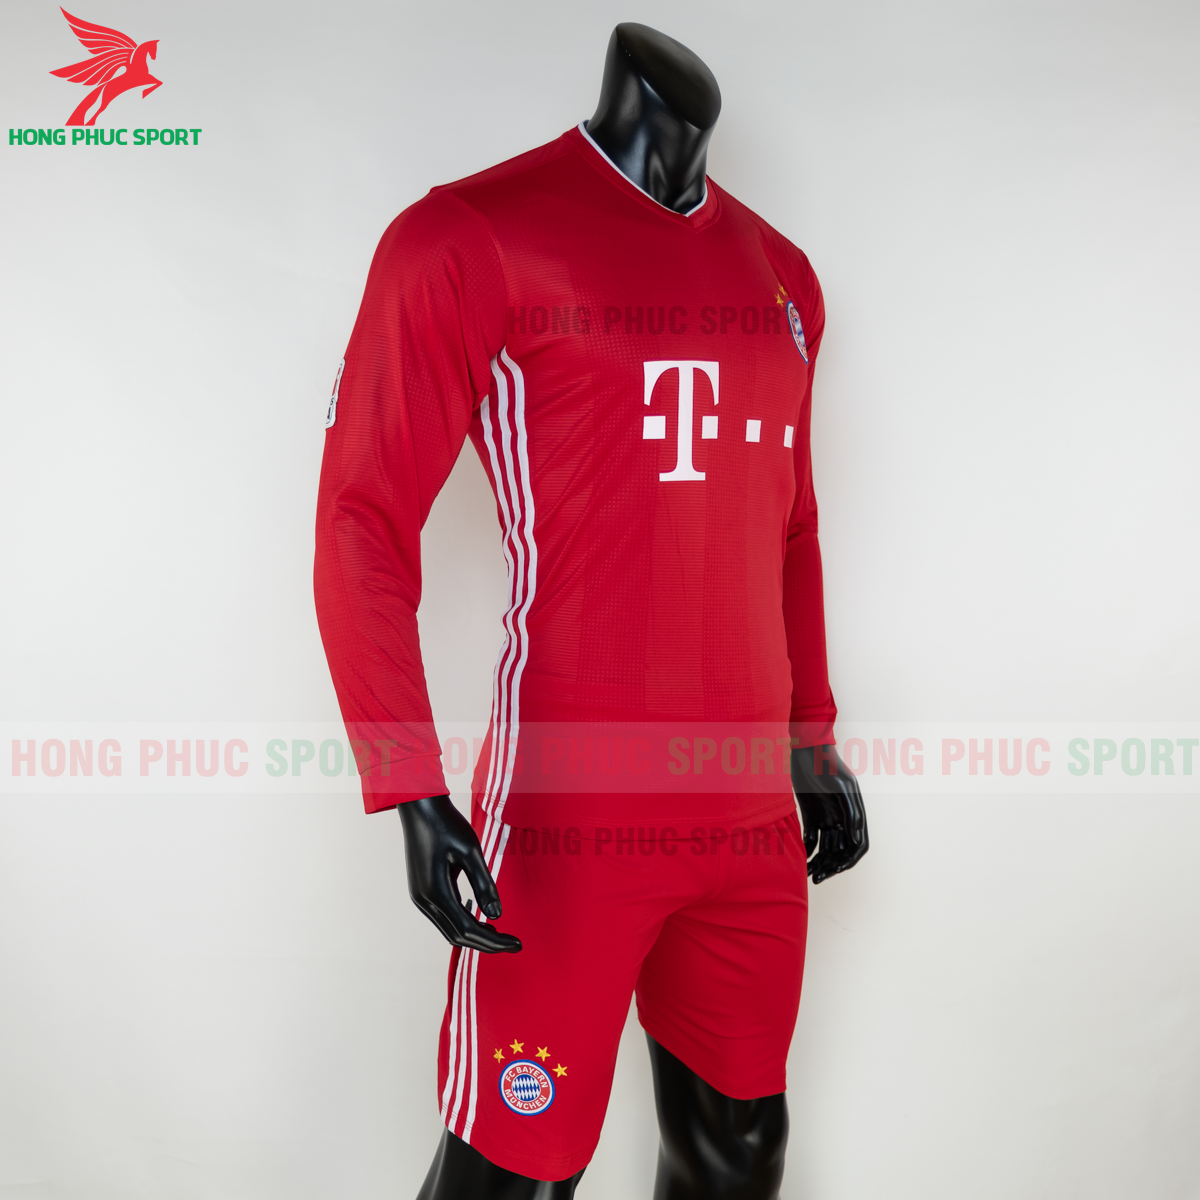 https://cdn.hongphucsport.com/unsafe/s4.shopbay.vn/files/285/ao-dai-tay-bayern-munich-2020-san-nha-6-5f8fba032986b.png